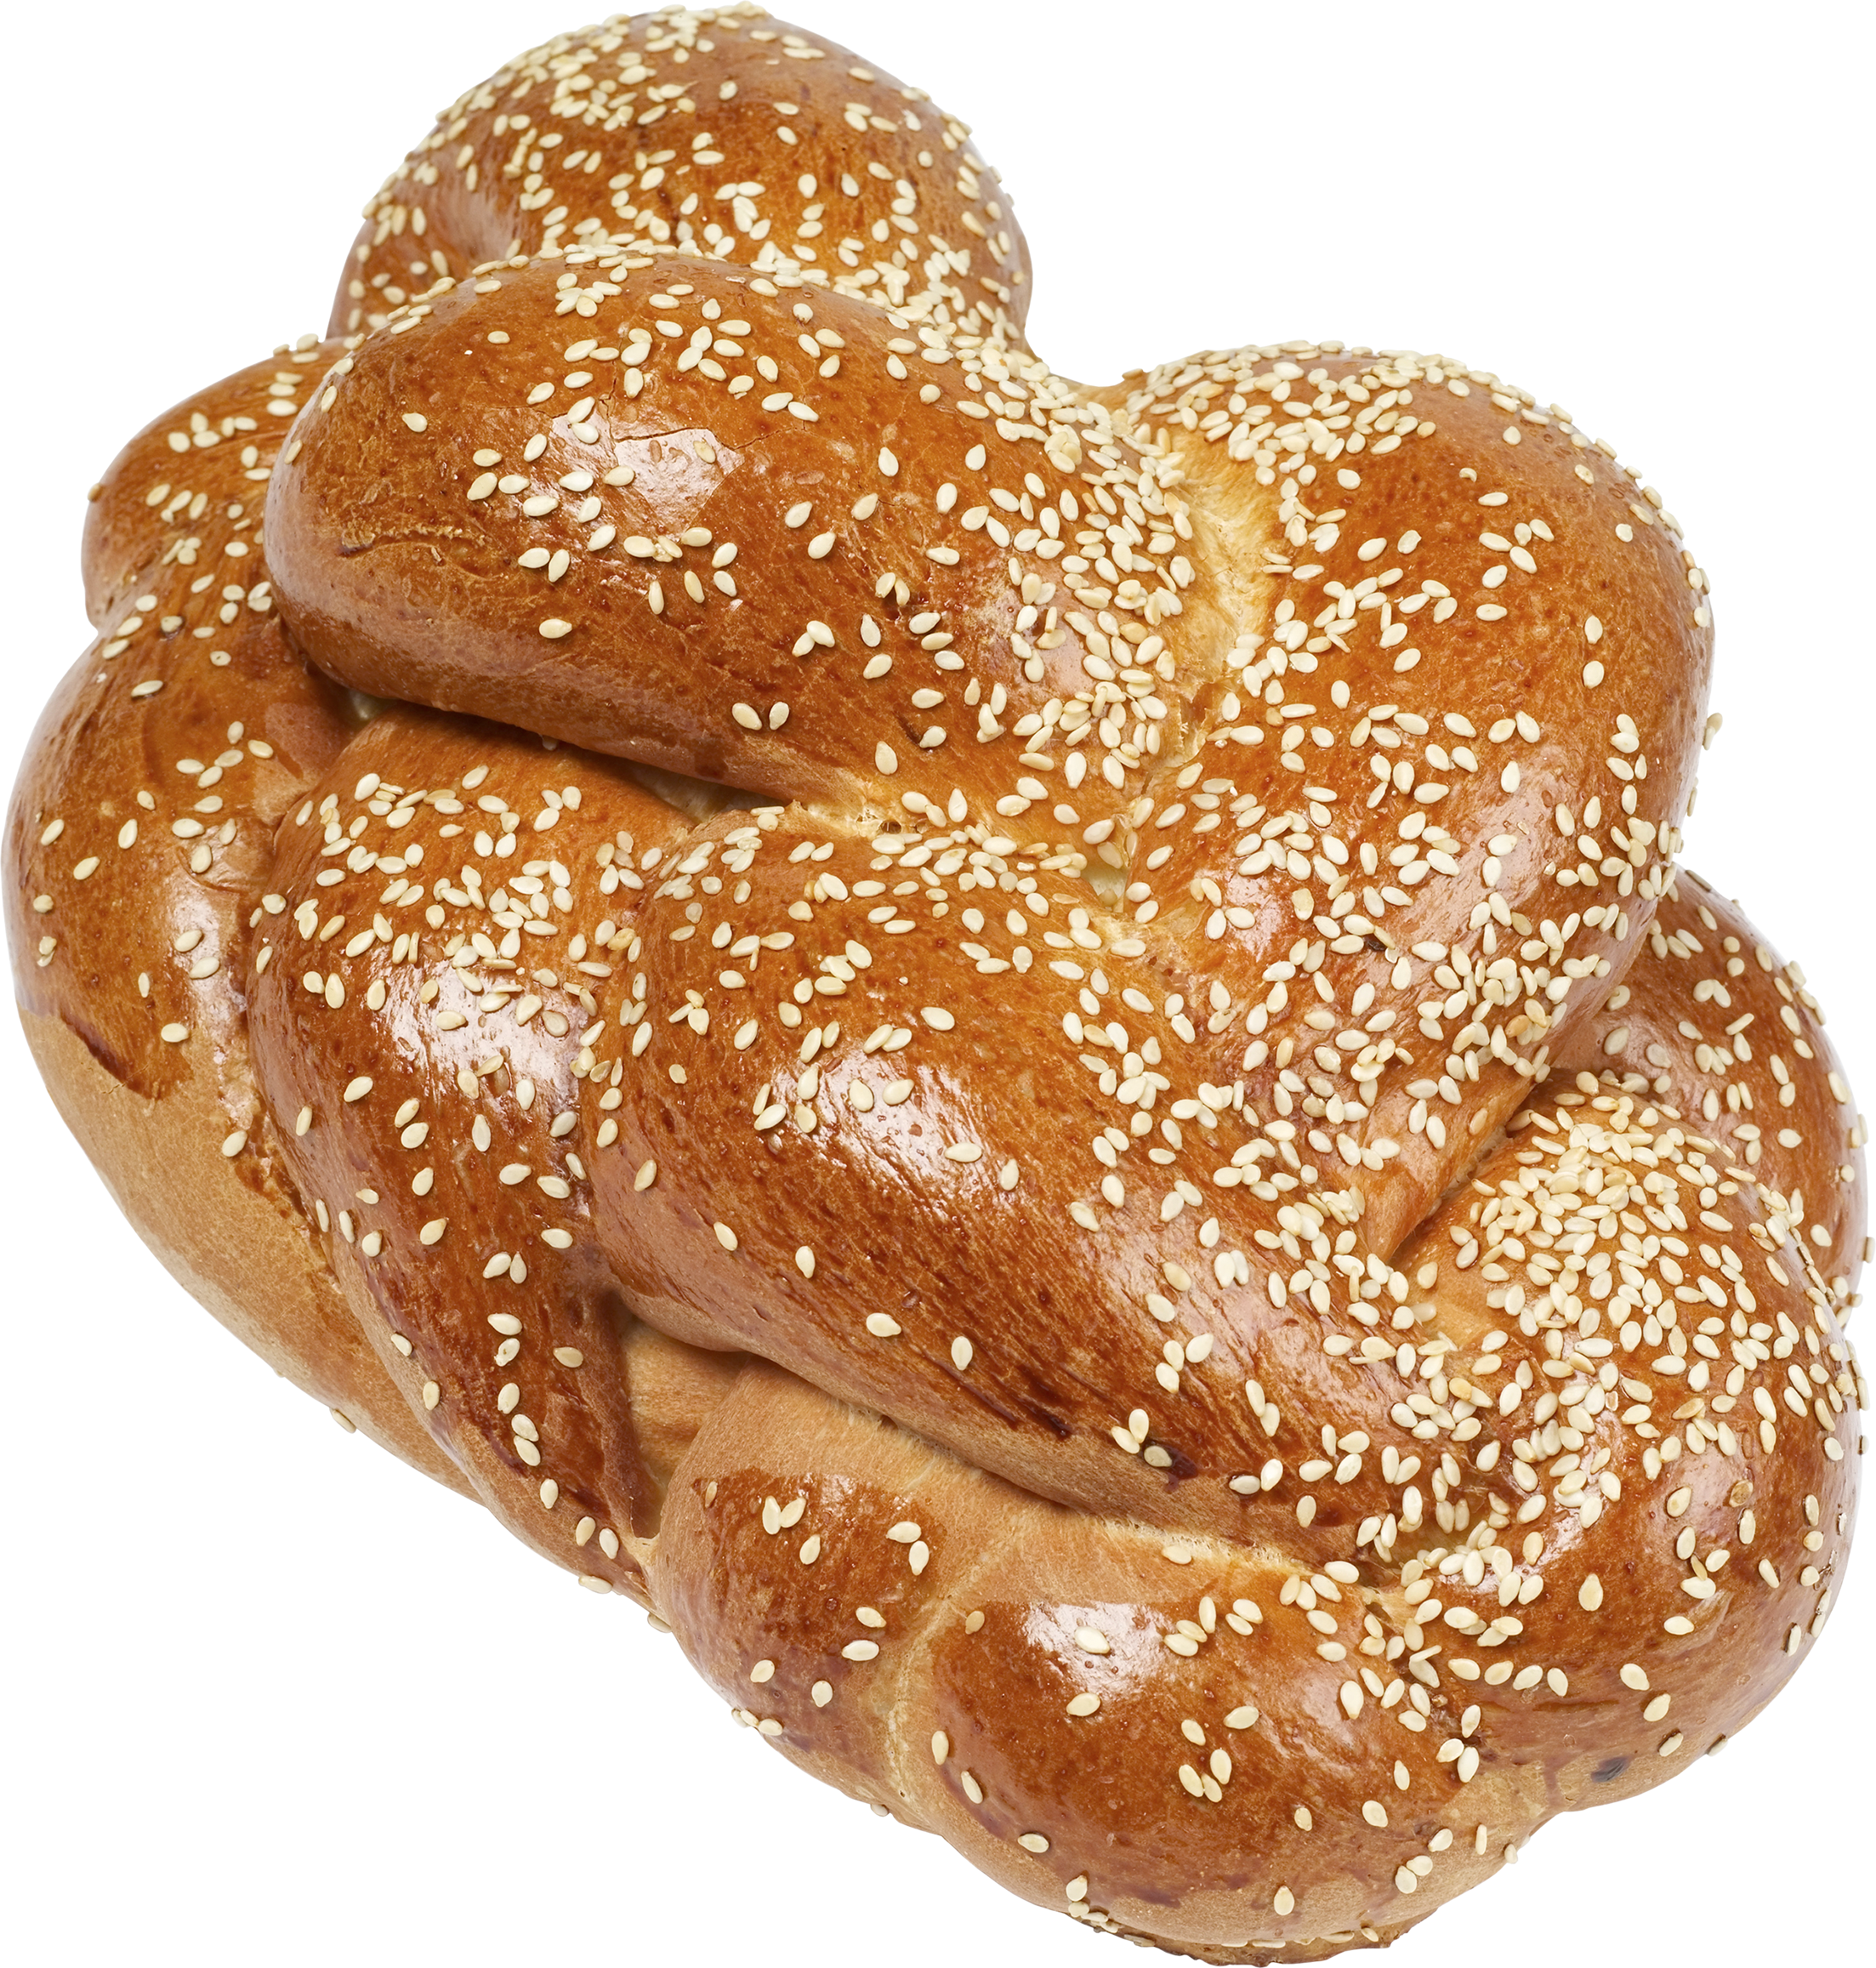 Clipart bread high quality. Png image purepng free